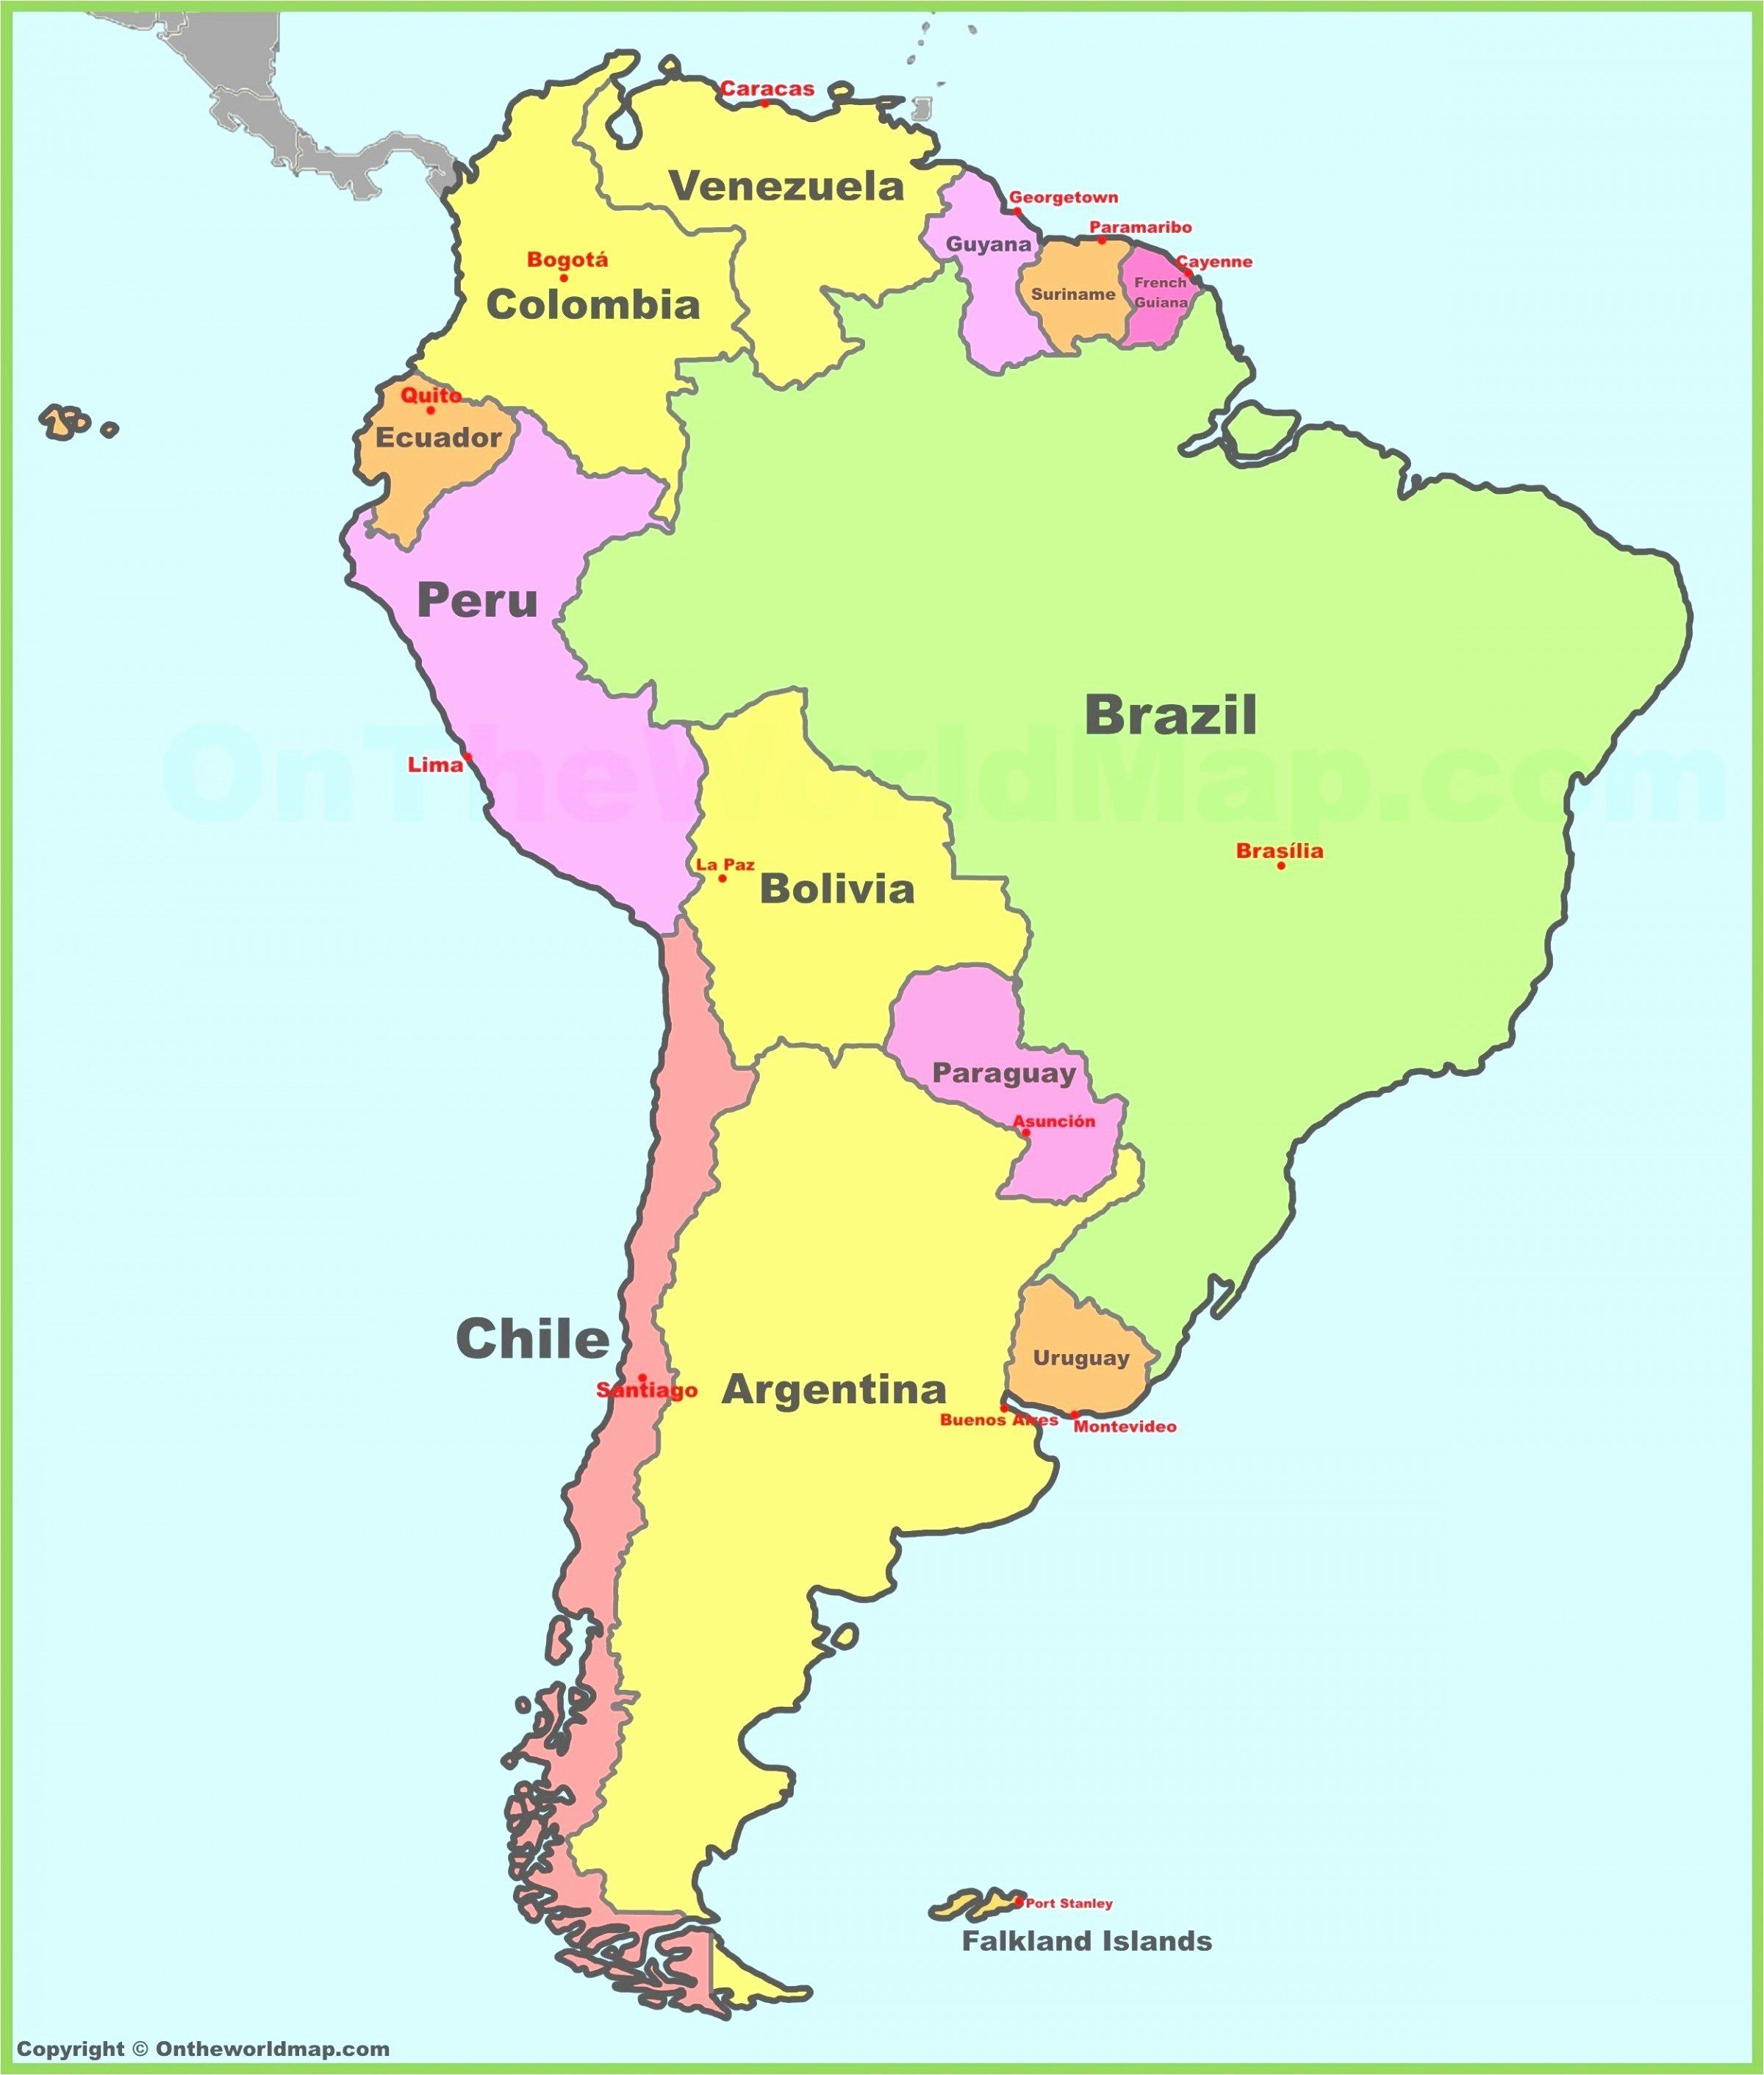 World Map With Countries Coloring Page Luxury World Map